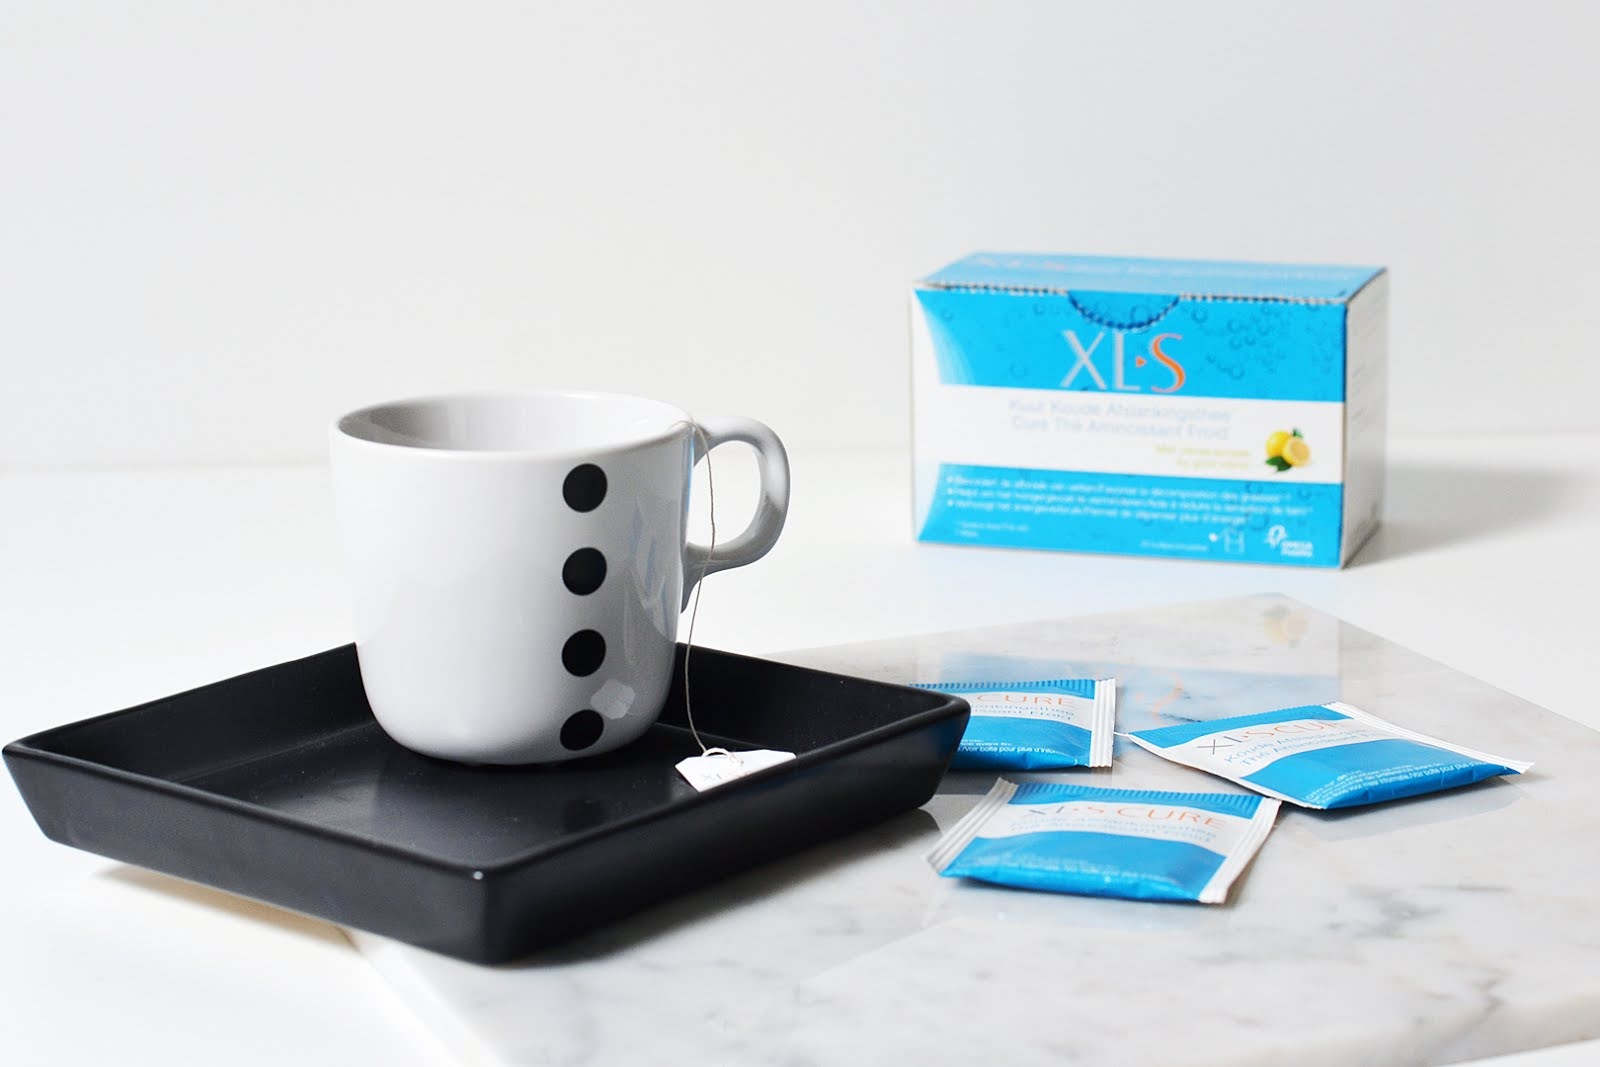 Kuur koude afslankingsthee, XL-S, viata, online apotheek, slimming tea, review